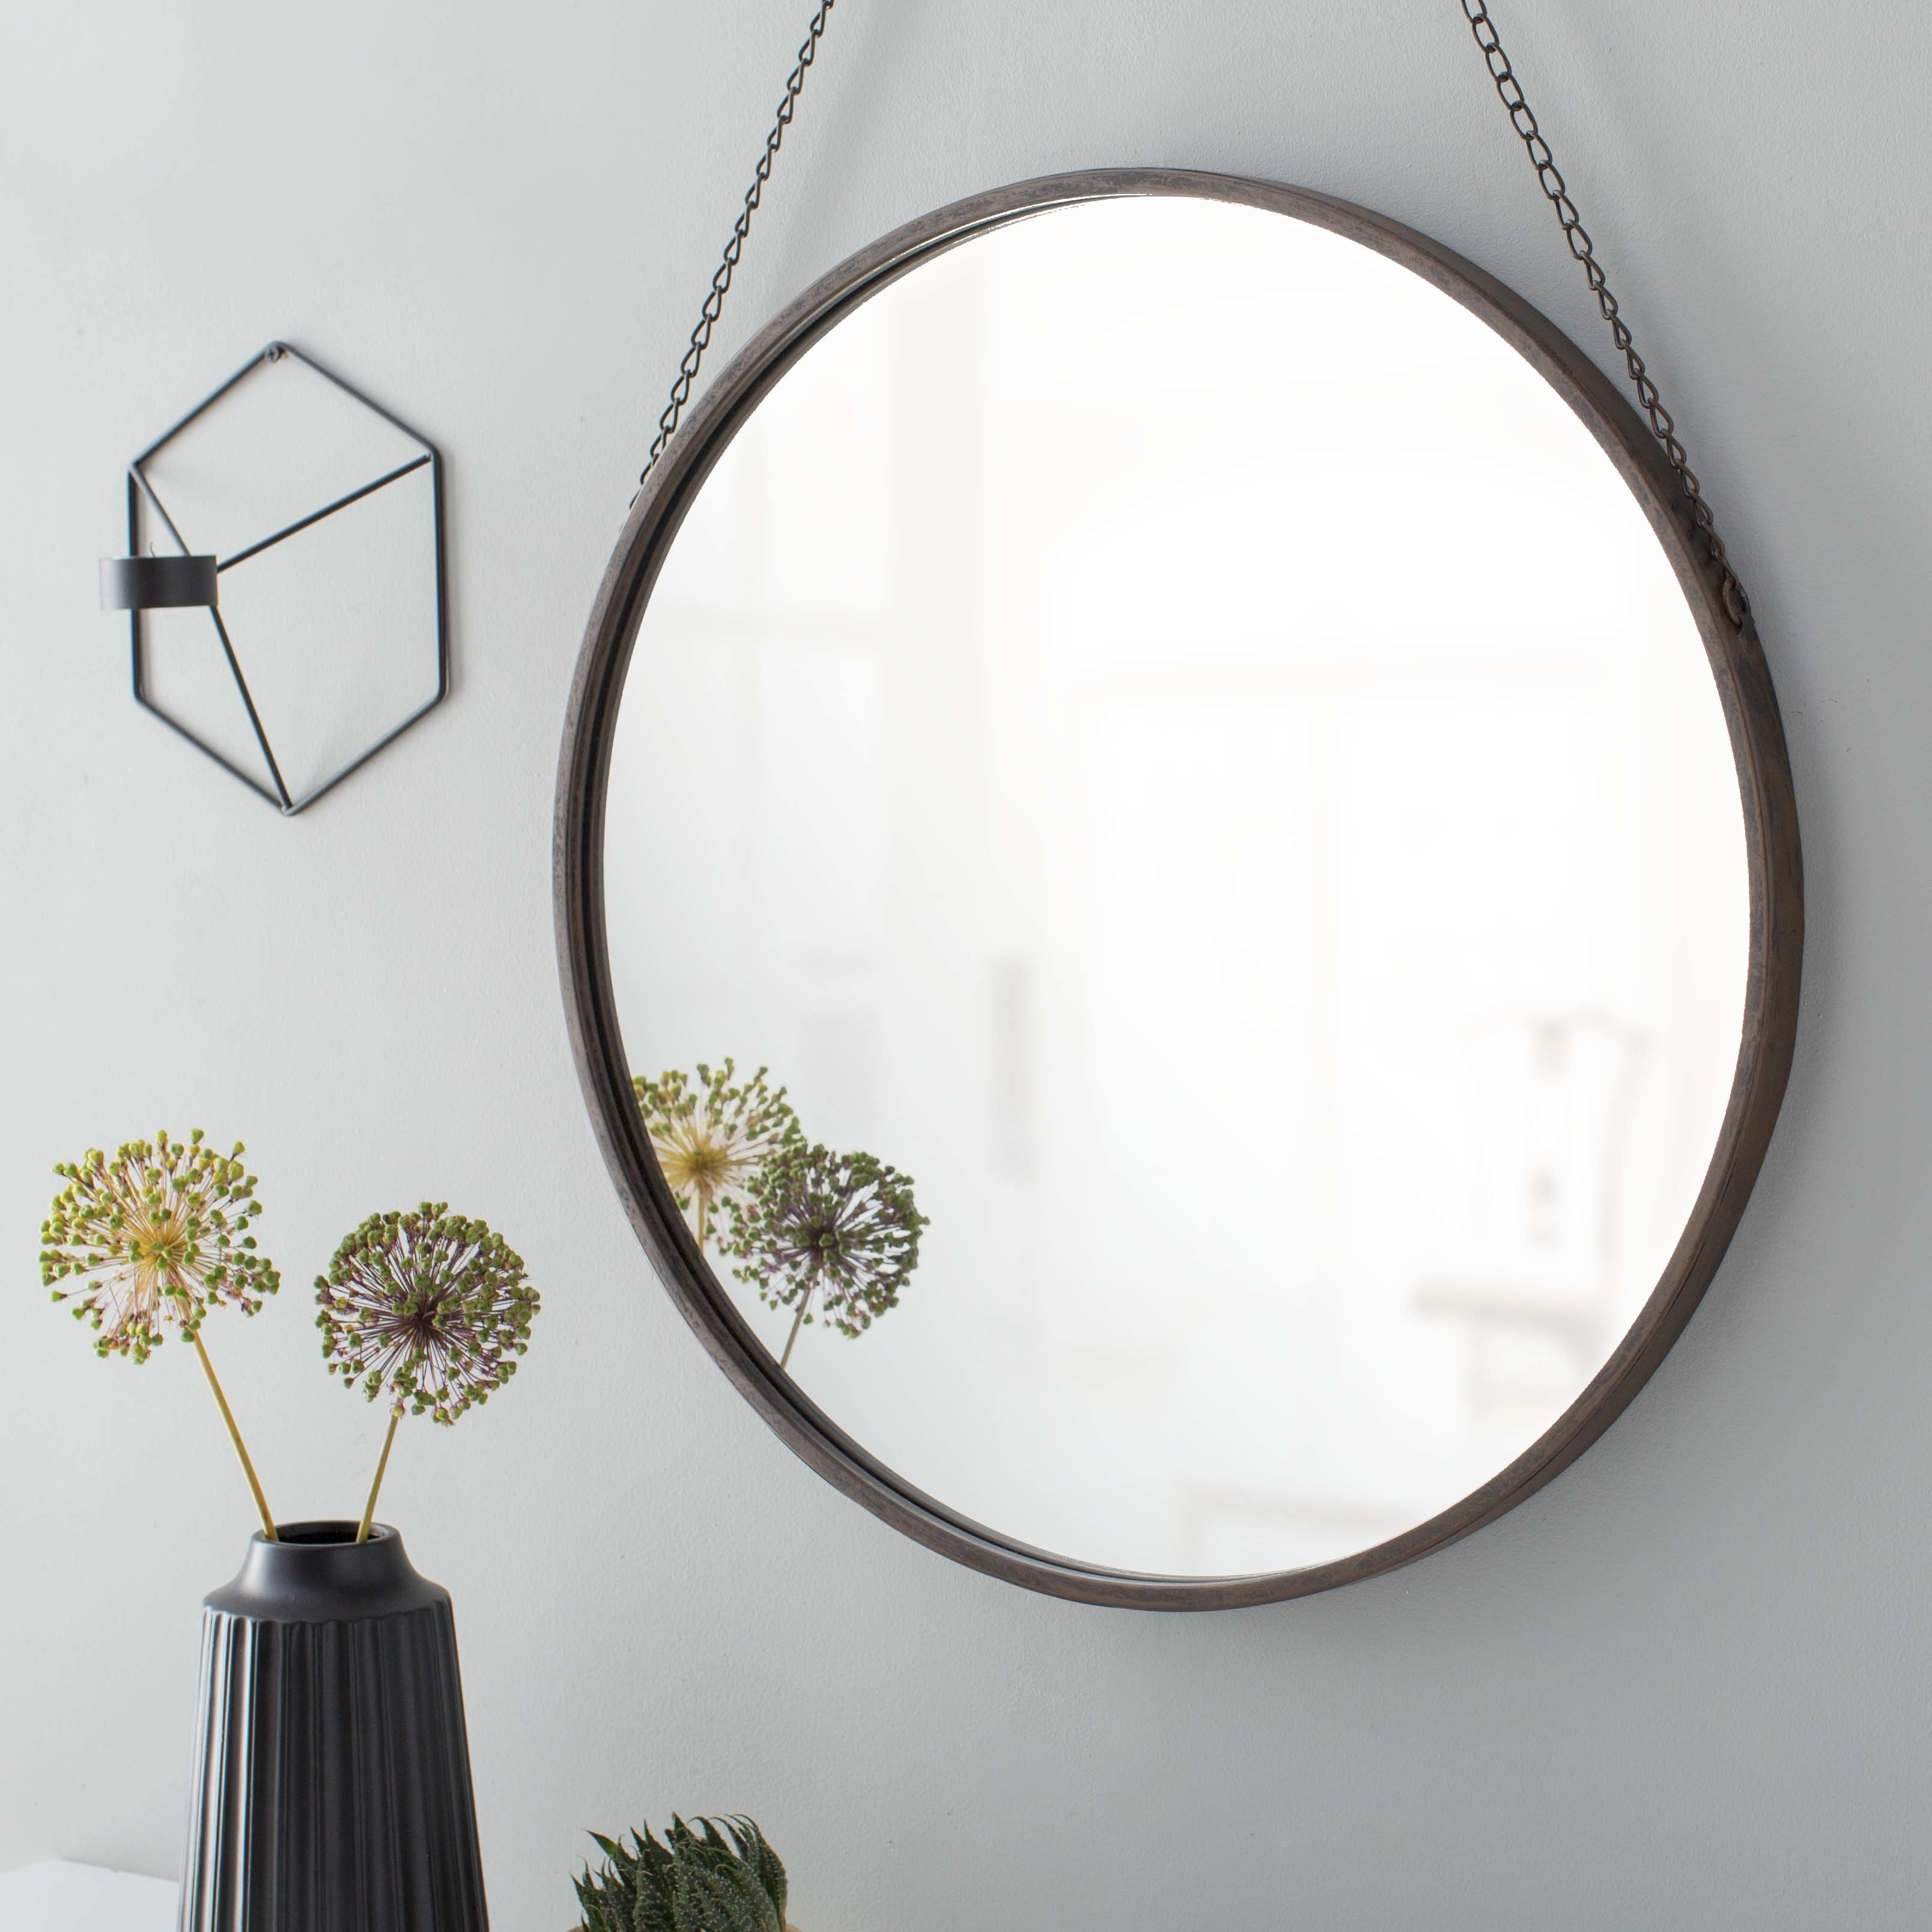 Modern Metal Round Wall Mirrors | Allmodern For Matthias Round Accent Mirrors (View 15 of 20)